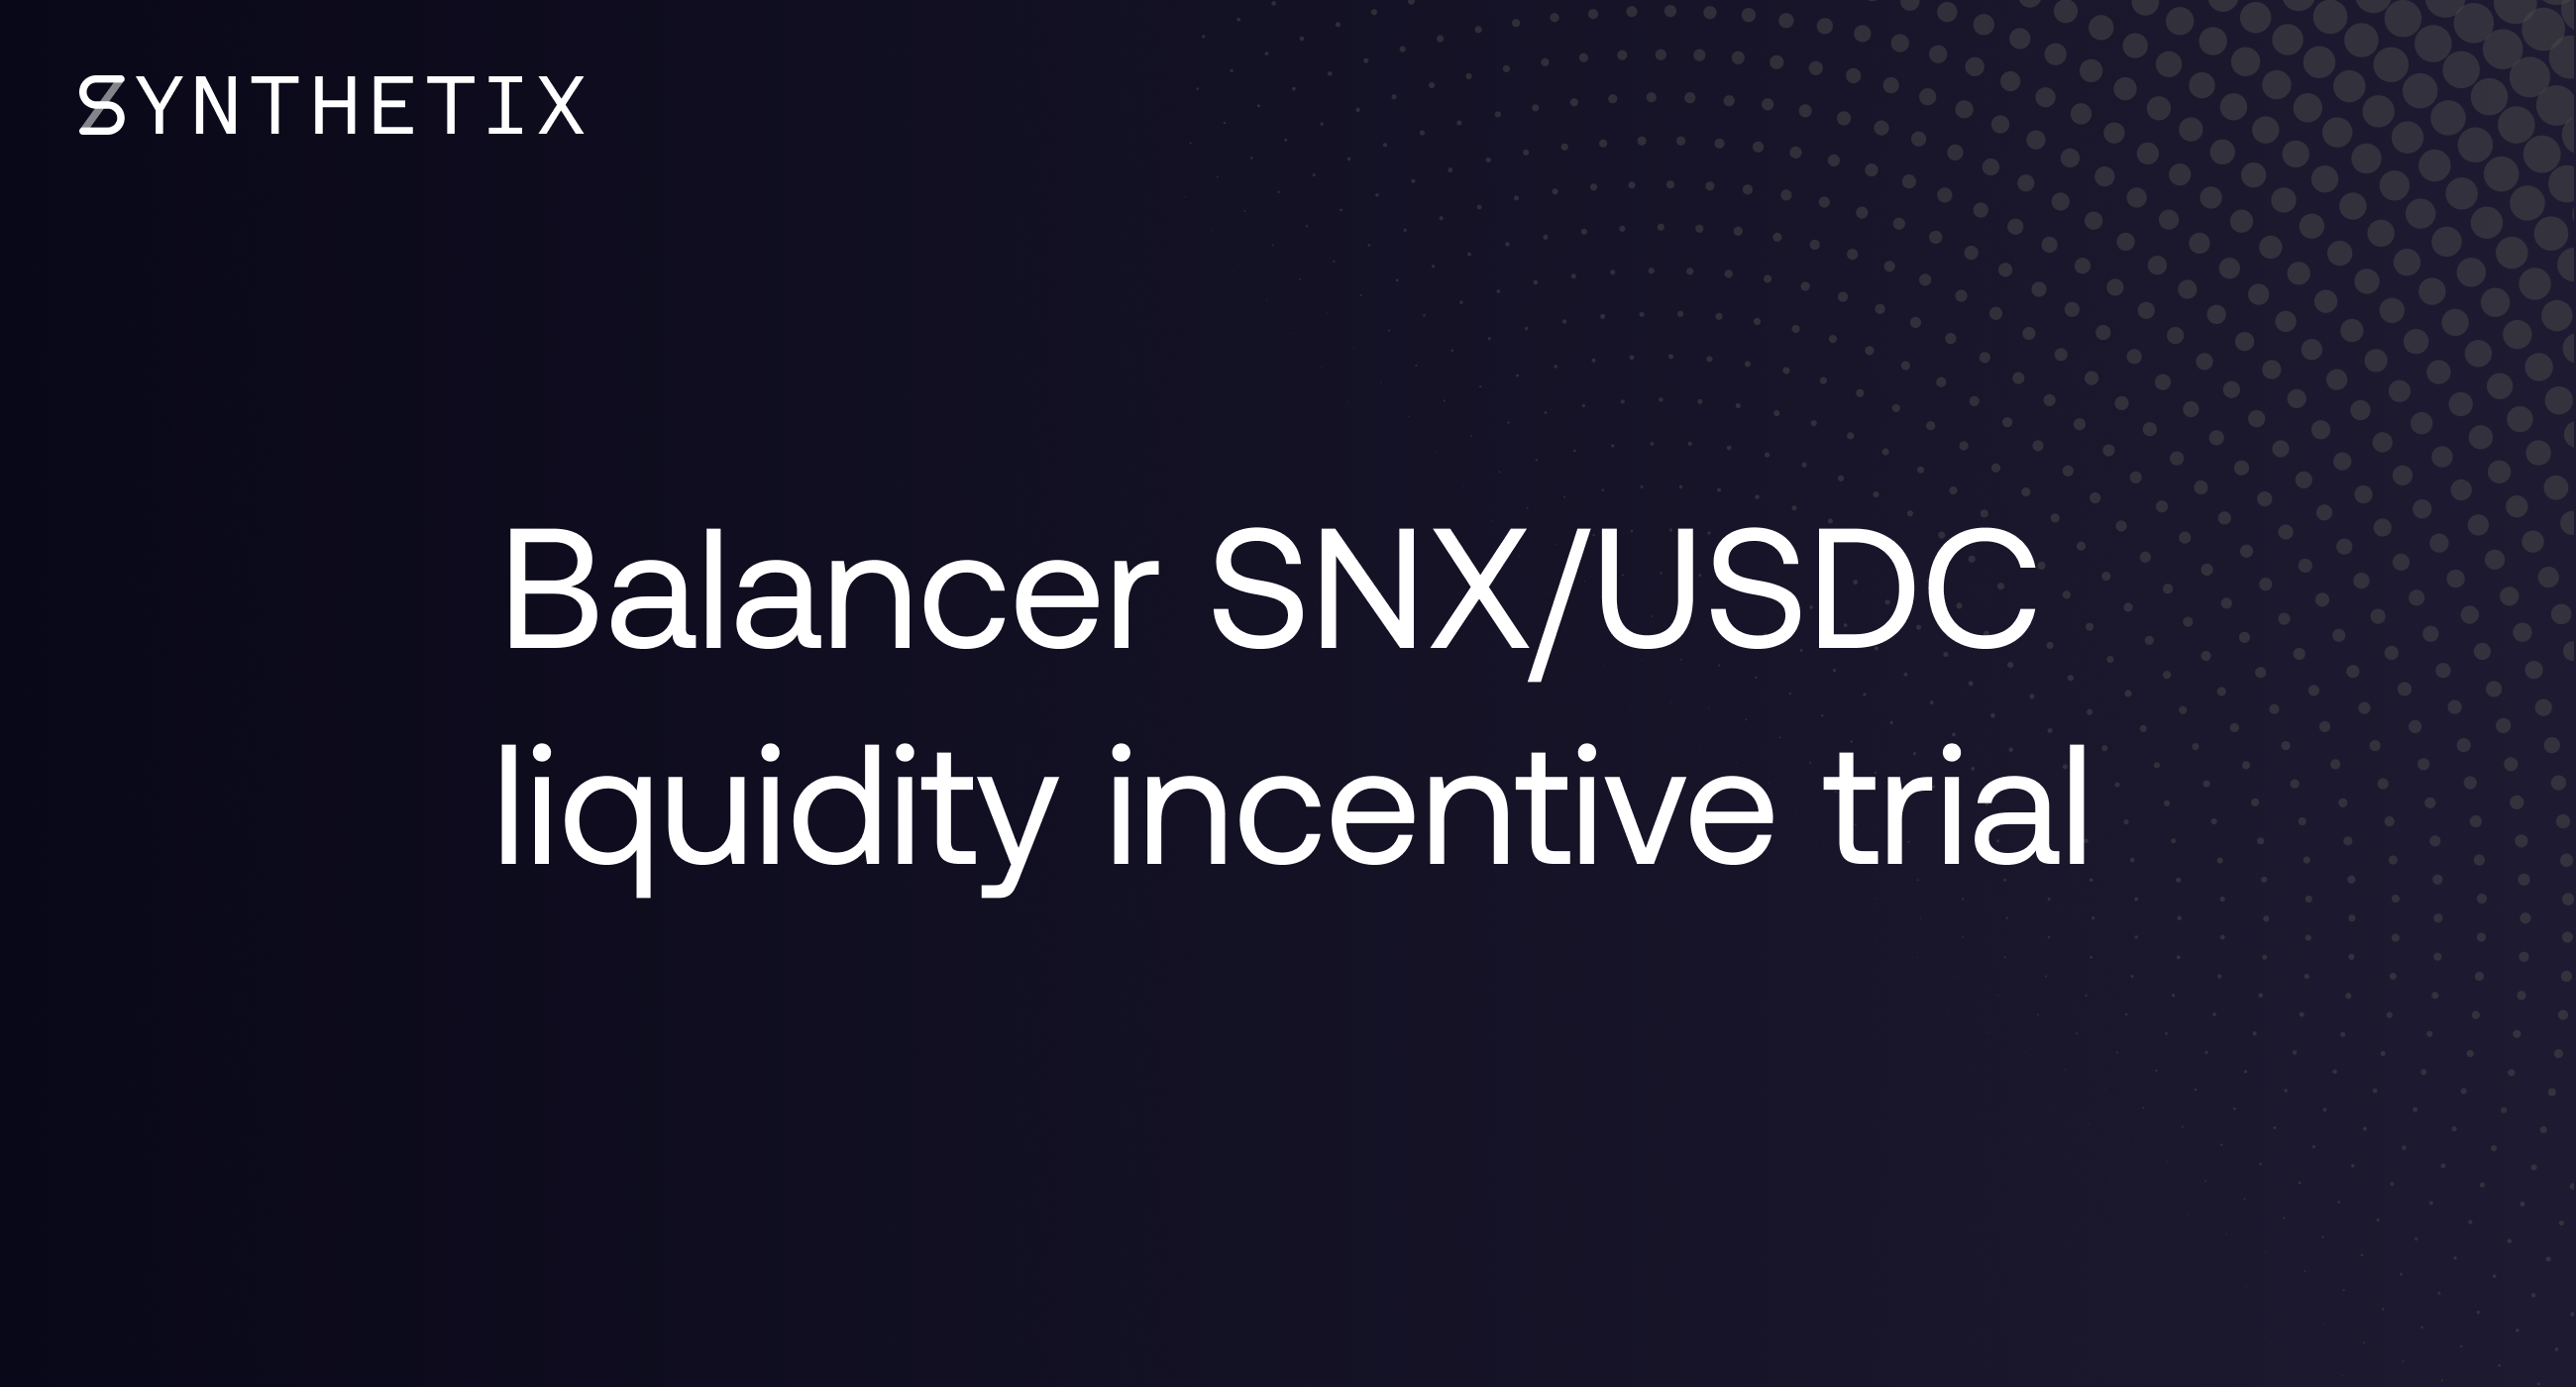 Balancer SNX/USDC liquidity trial